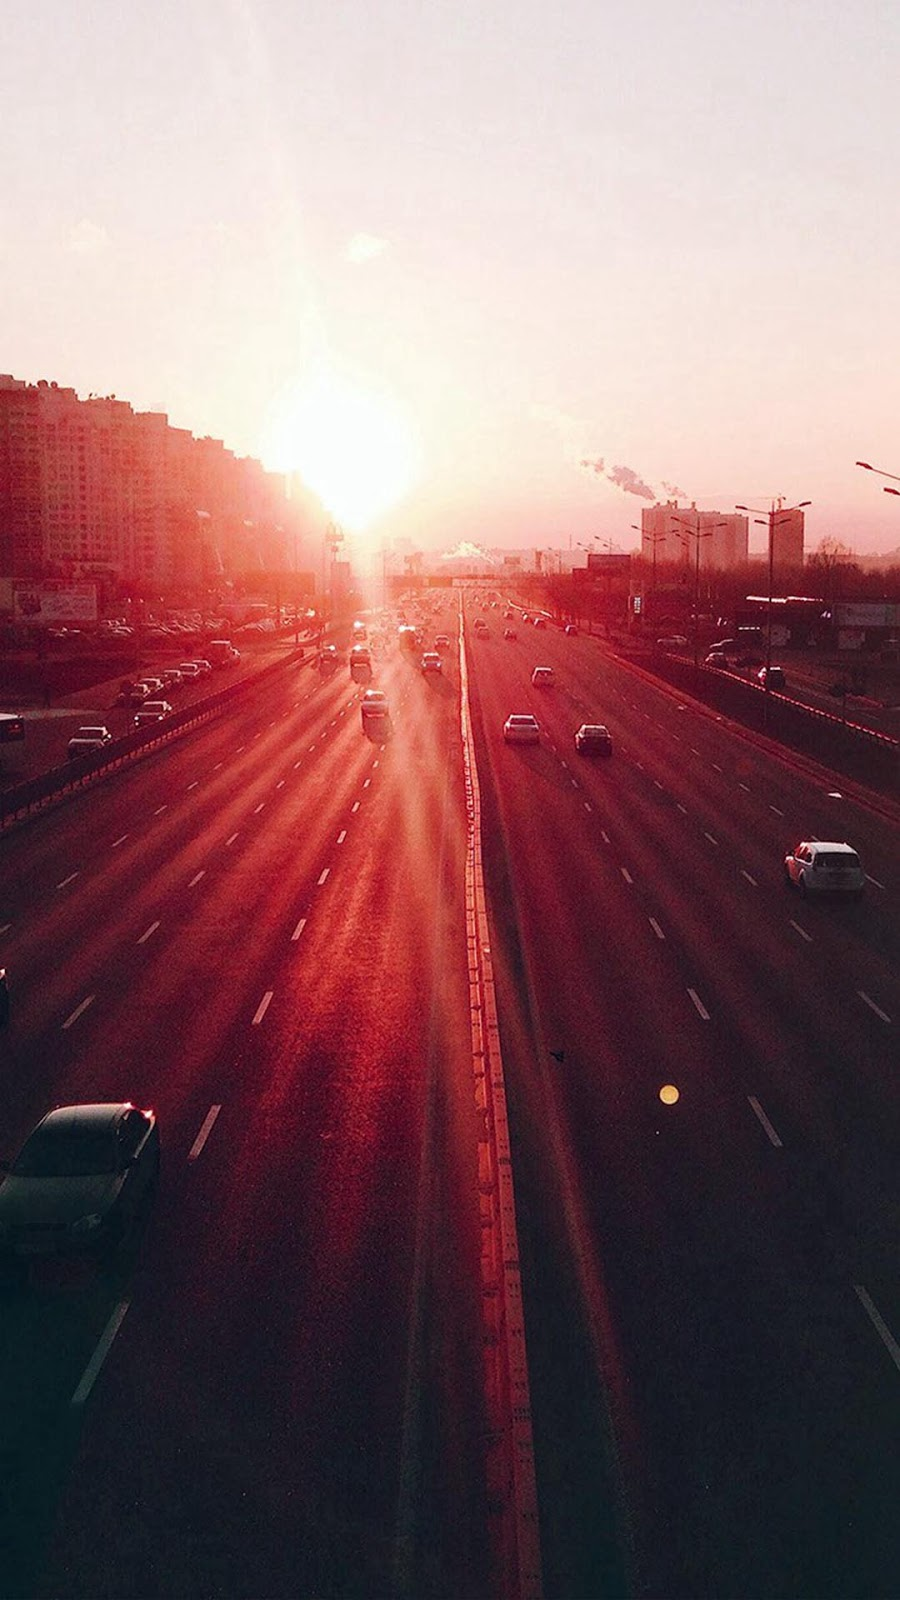 hd iphone 7 wallpapers - city sunset road car red flare - hd